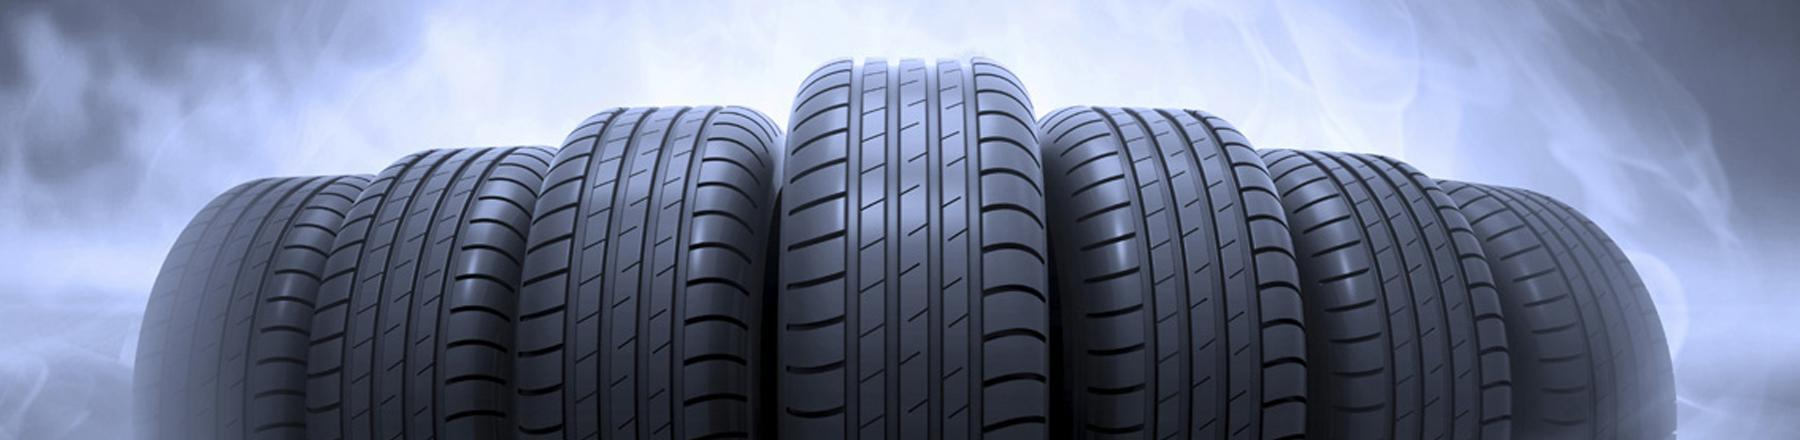 drayton valley tires winter tires tire for sale alberta